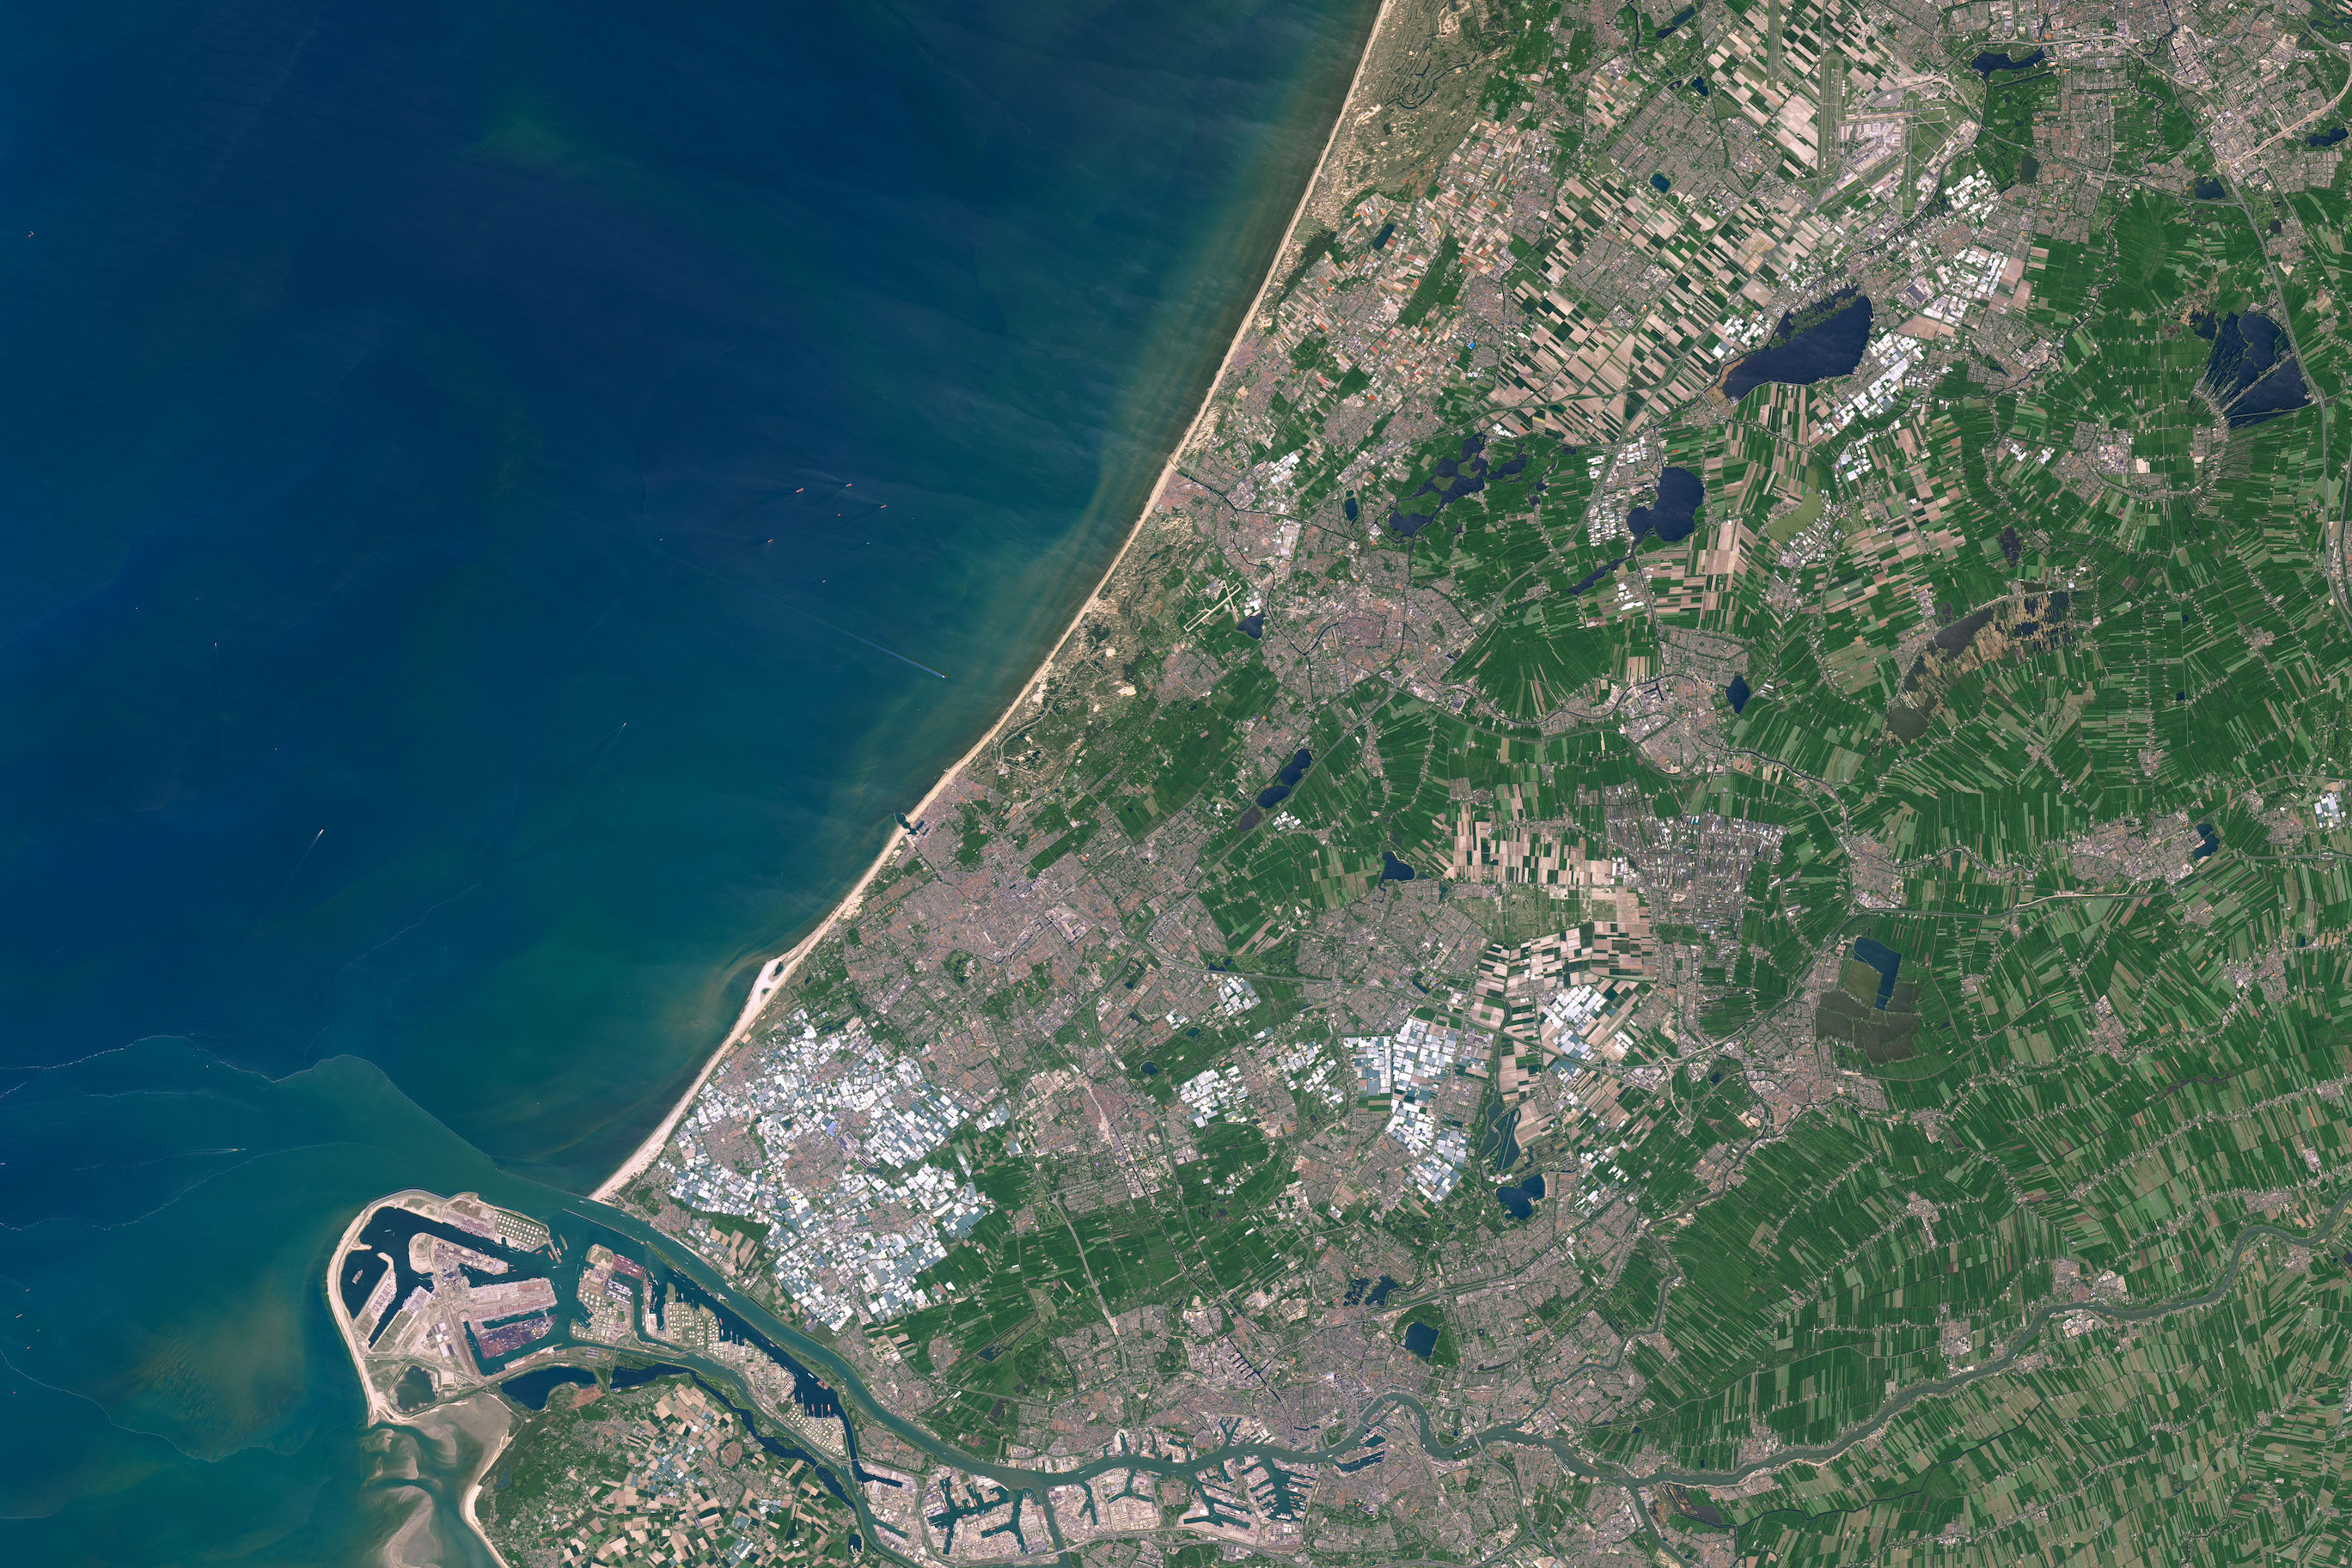 Today's Image of the Day comes courtesy of the NASA Earth Observatory and features a look at the city of Leiden, Holland.